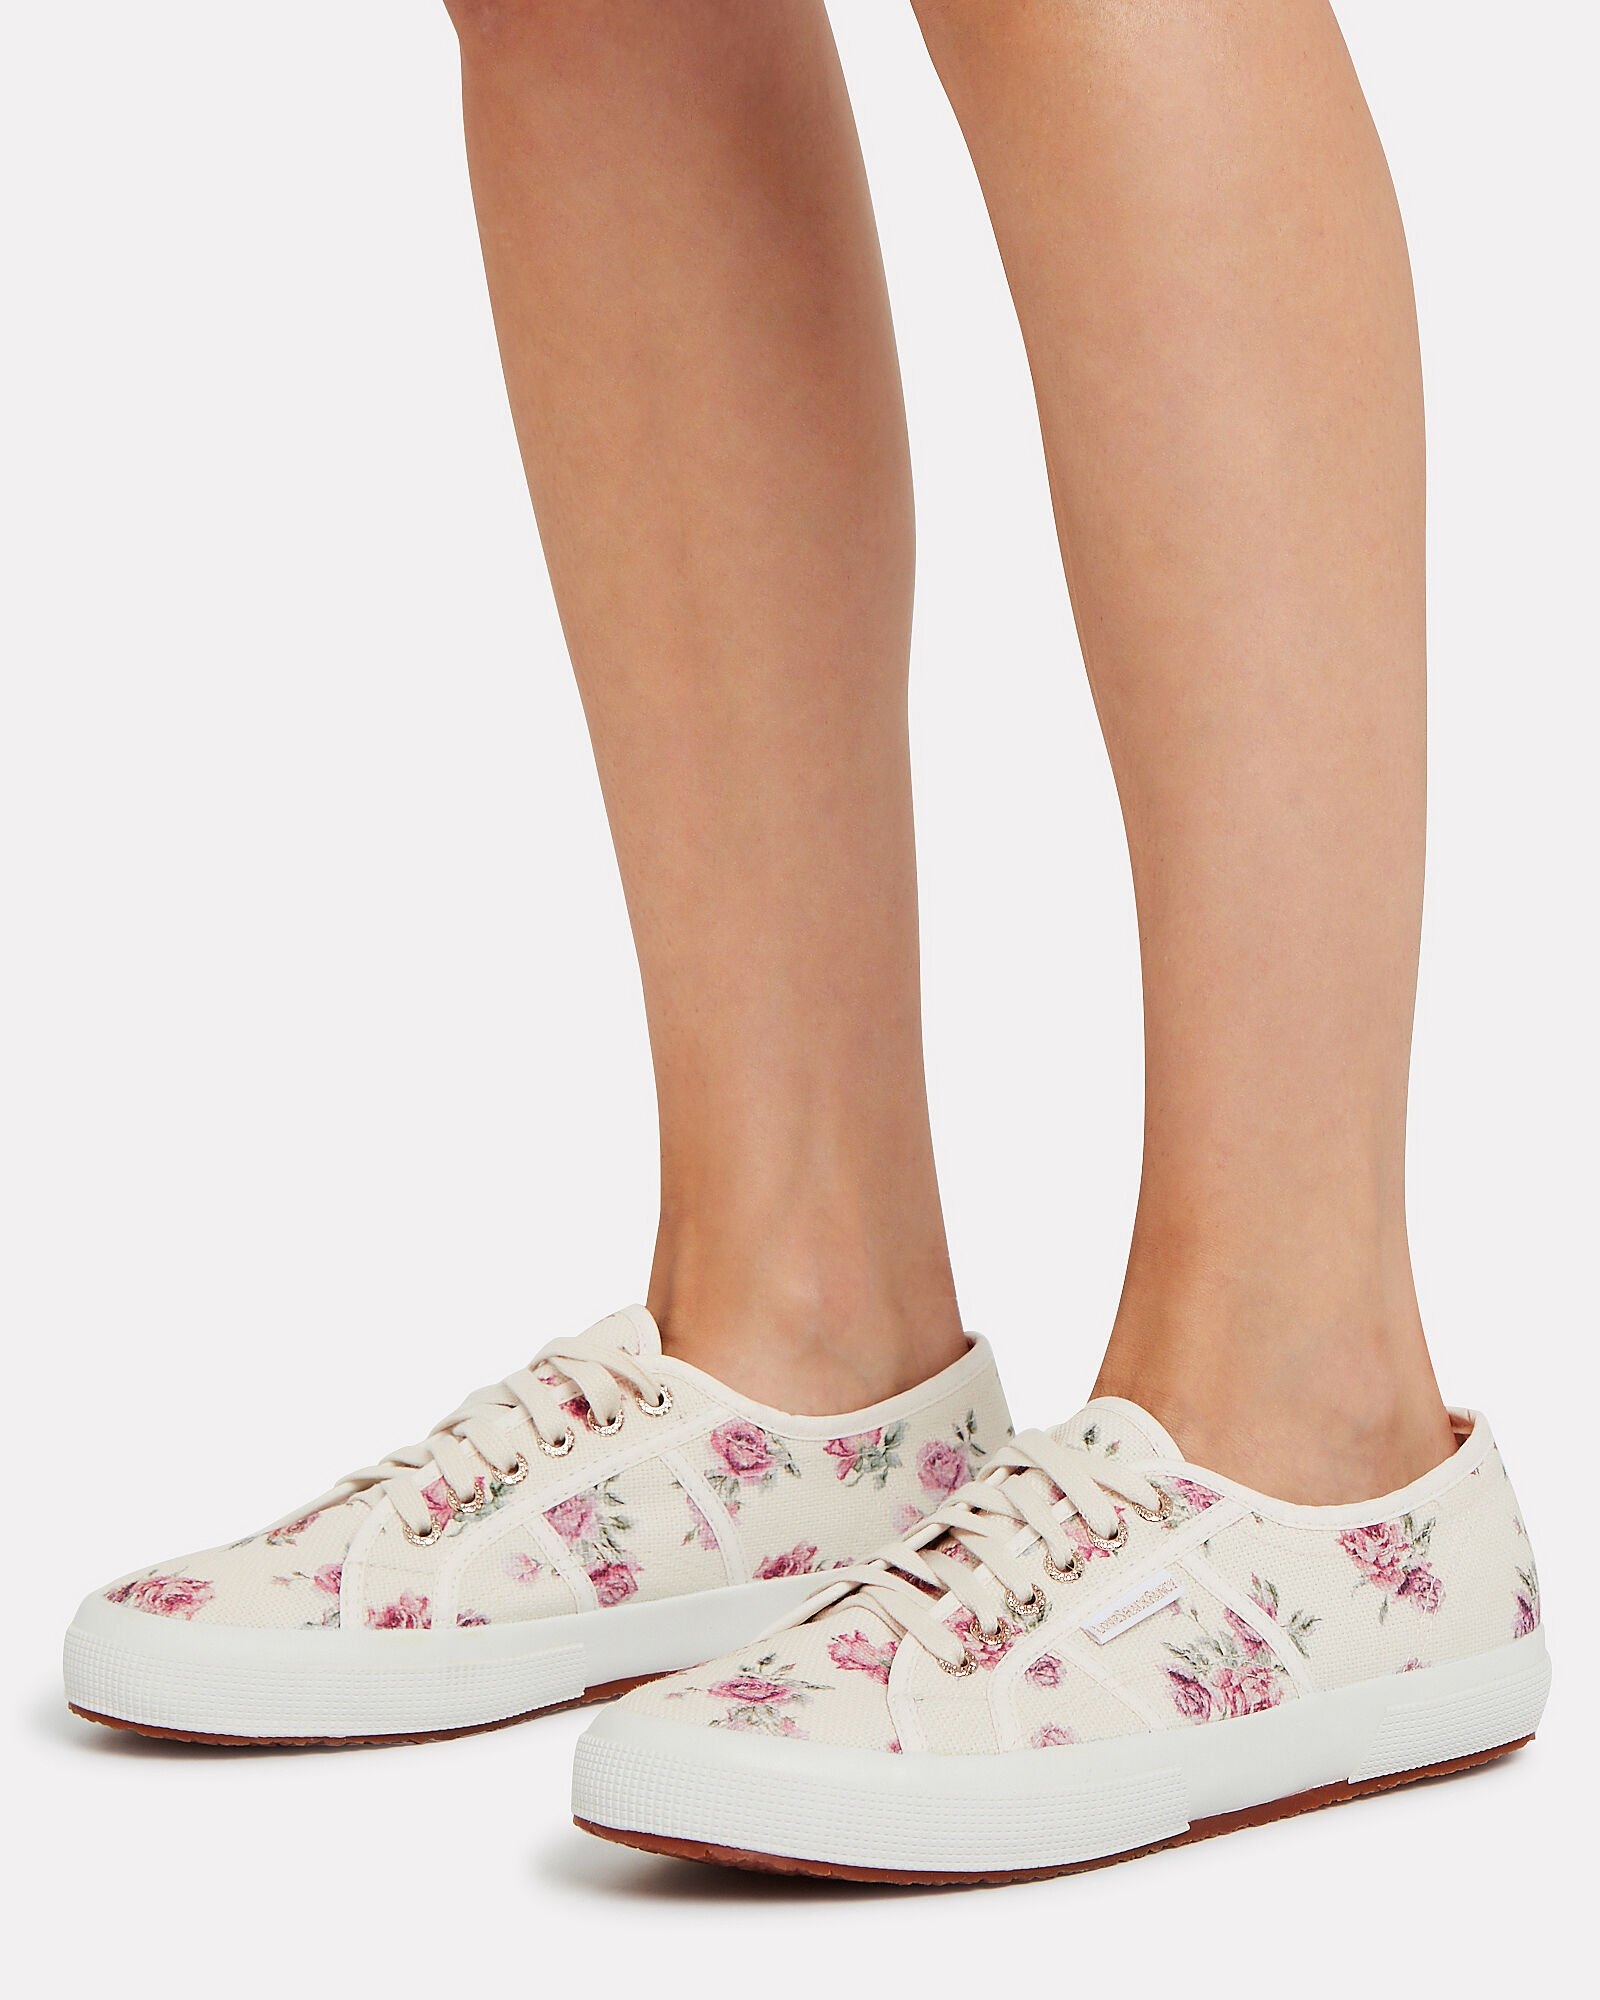 Superga x LoveShackFancy Provence Floral Sneakers, WHITE, hi-res